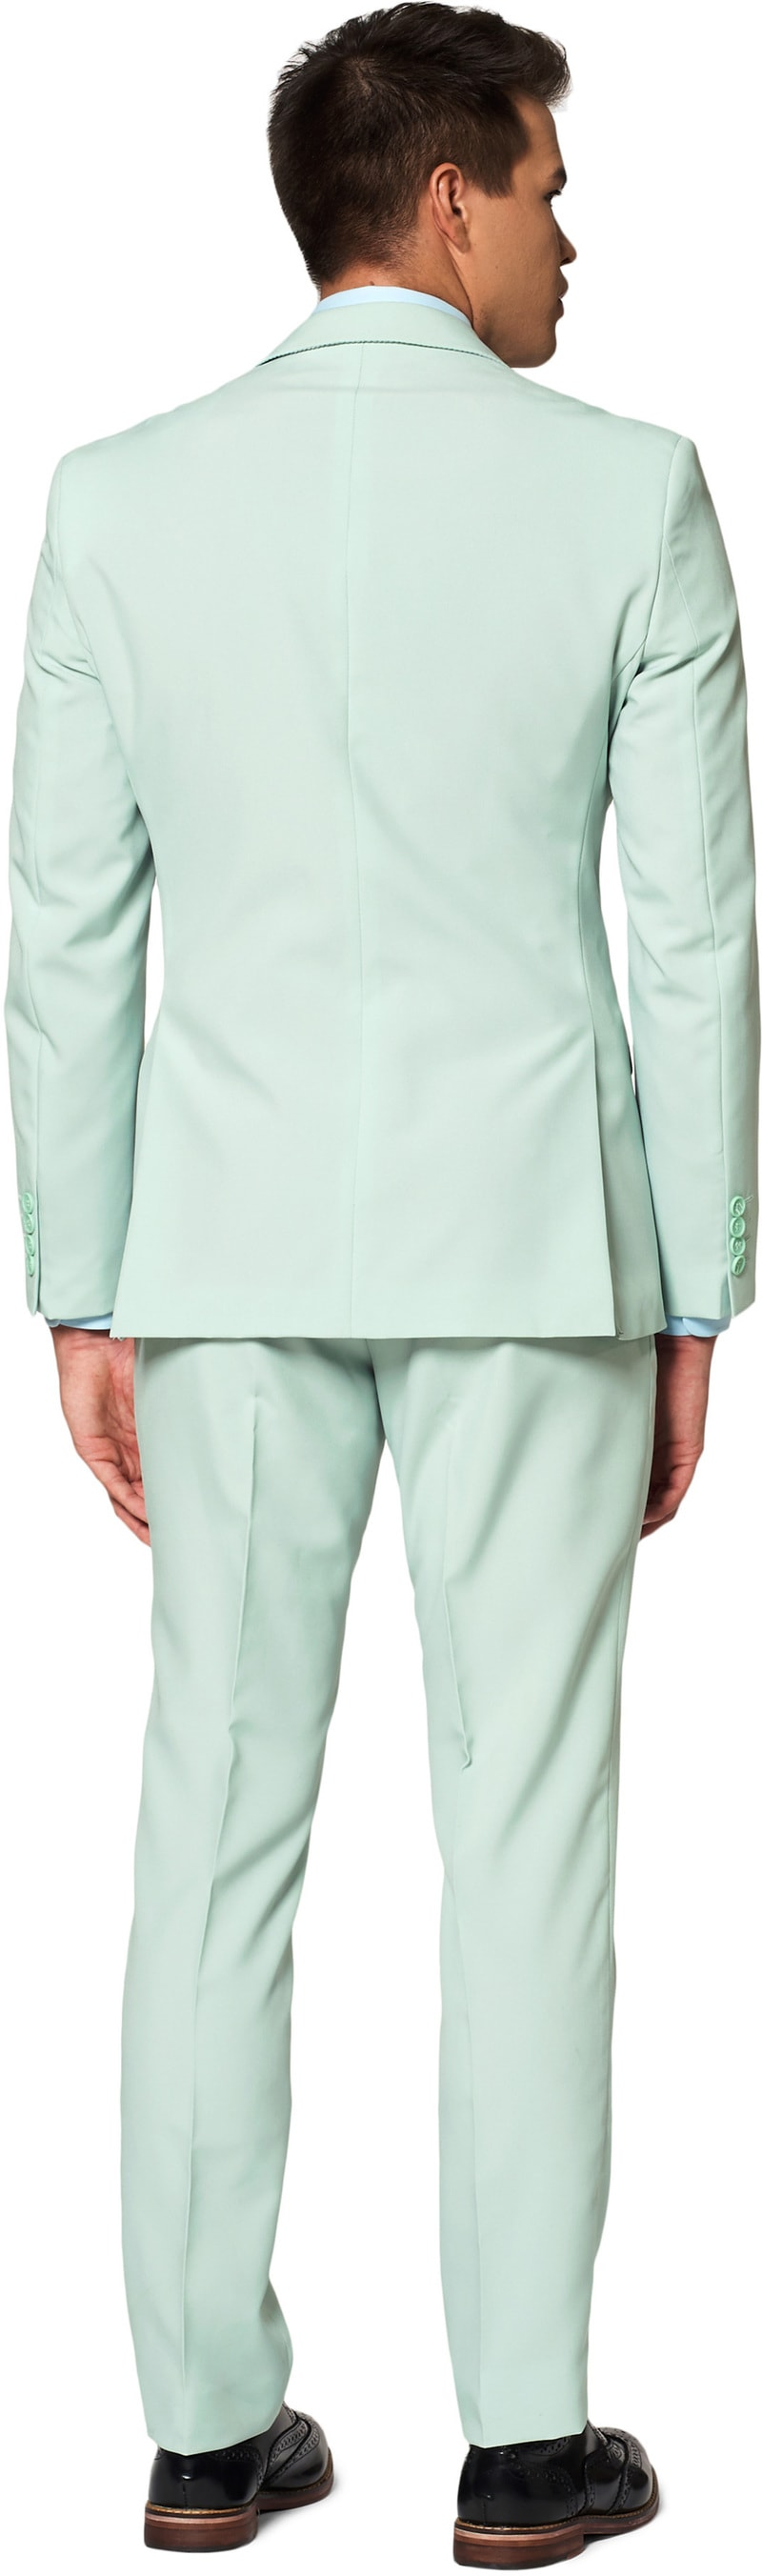 OppoSuits Anzug Magic Mint Foto 1